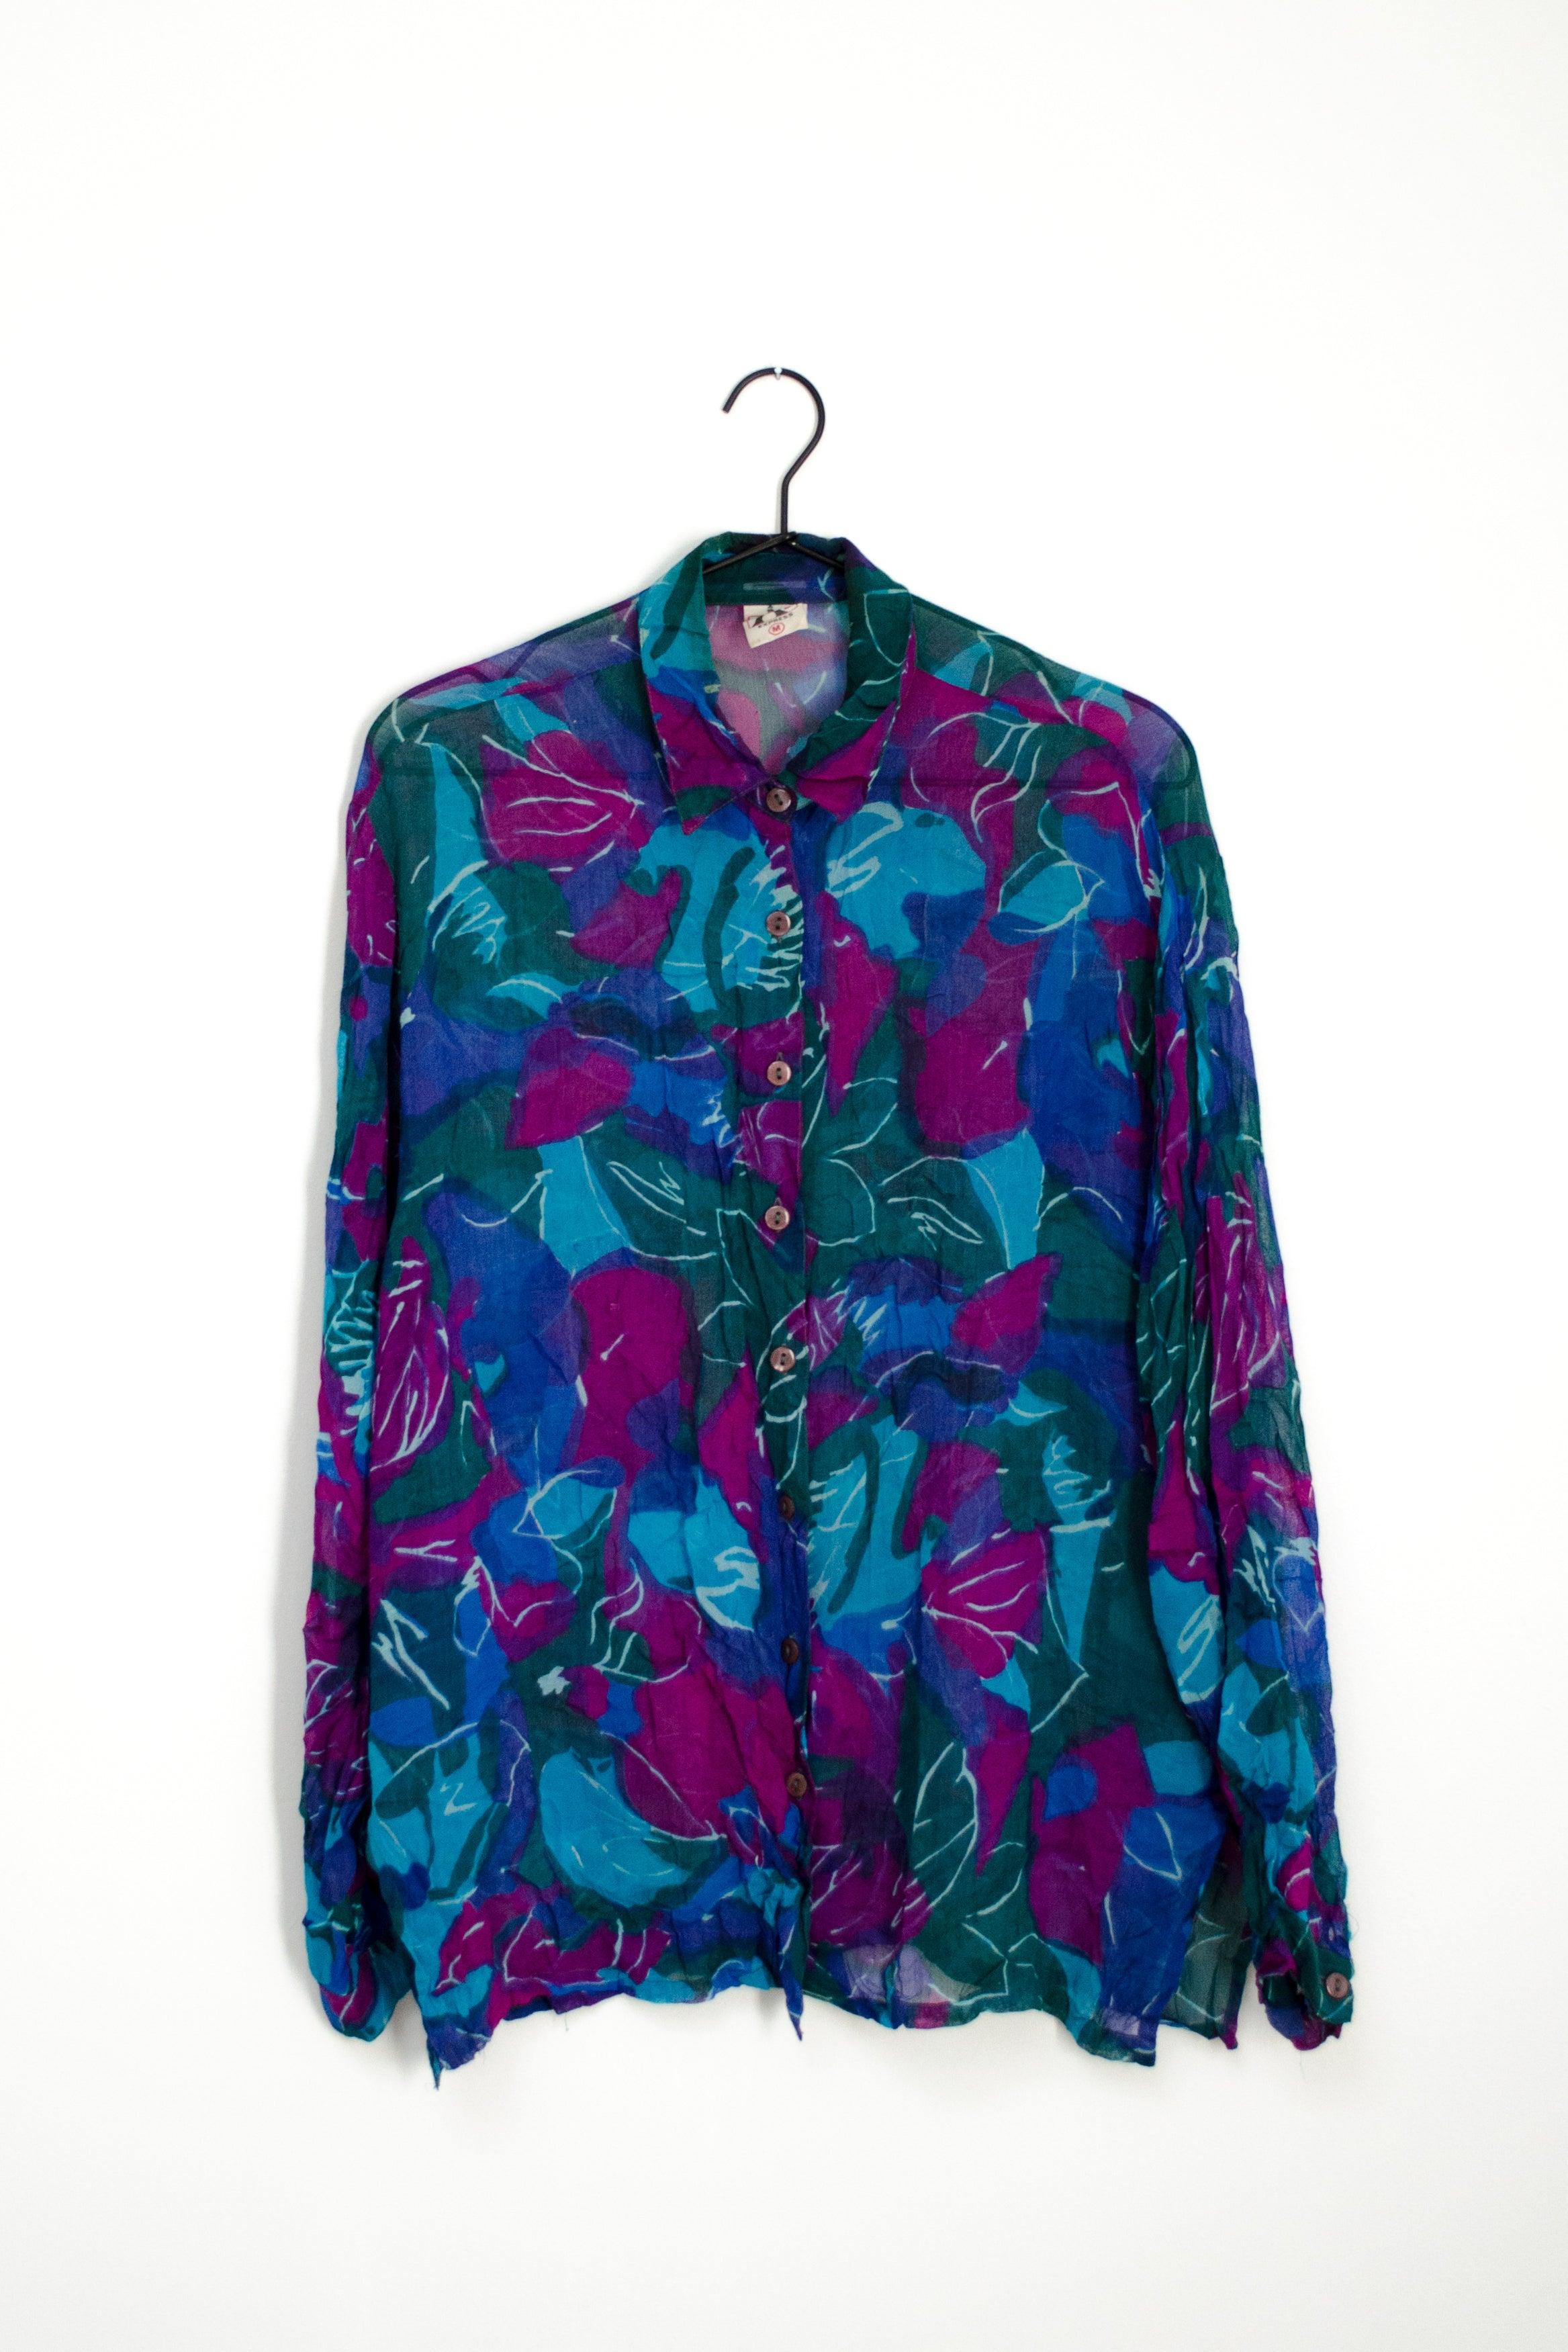 Vintage 90s Blue Sheer Floral Shirt by Express Paris / S-M